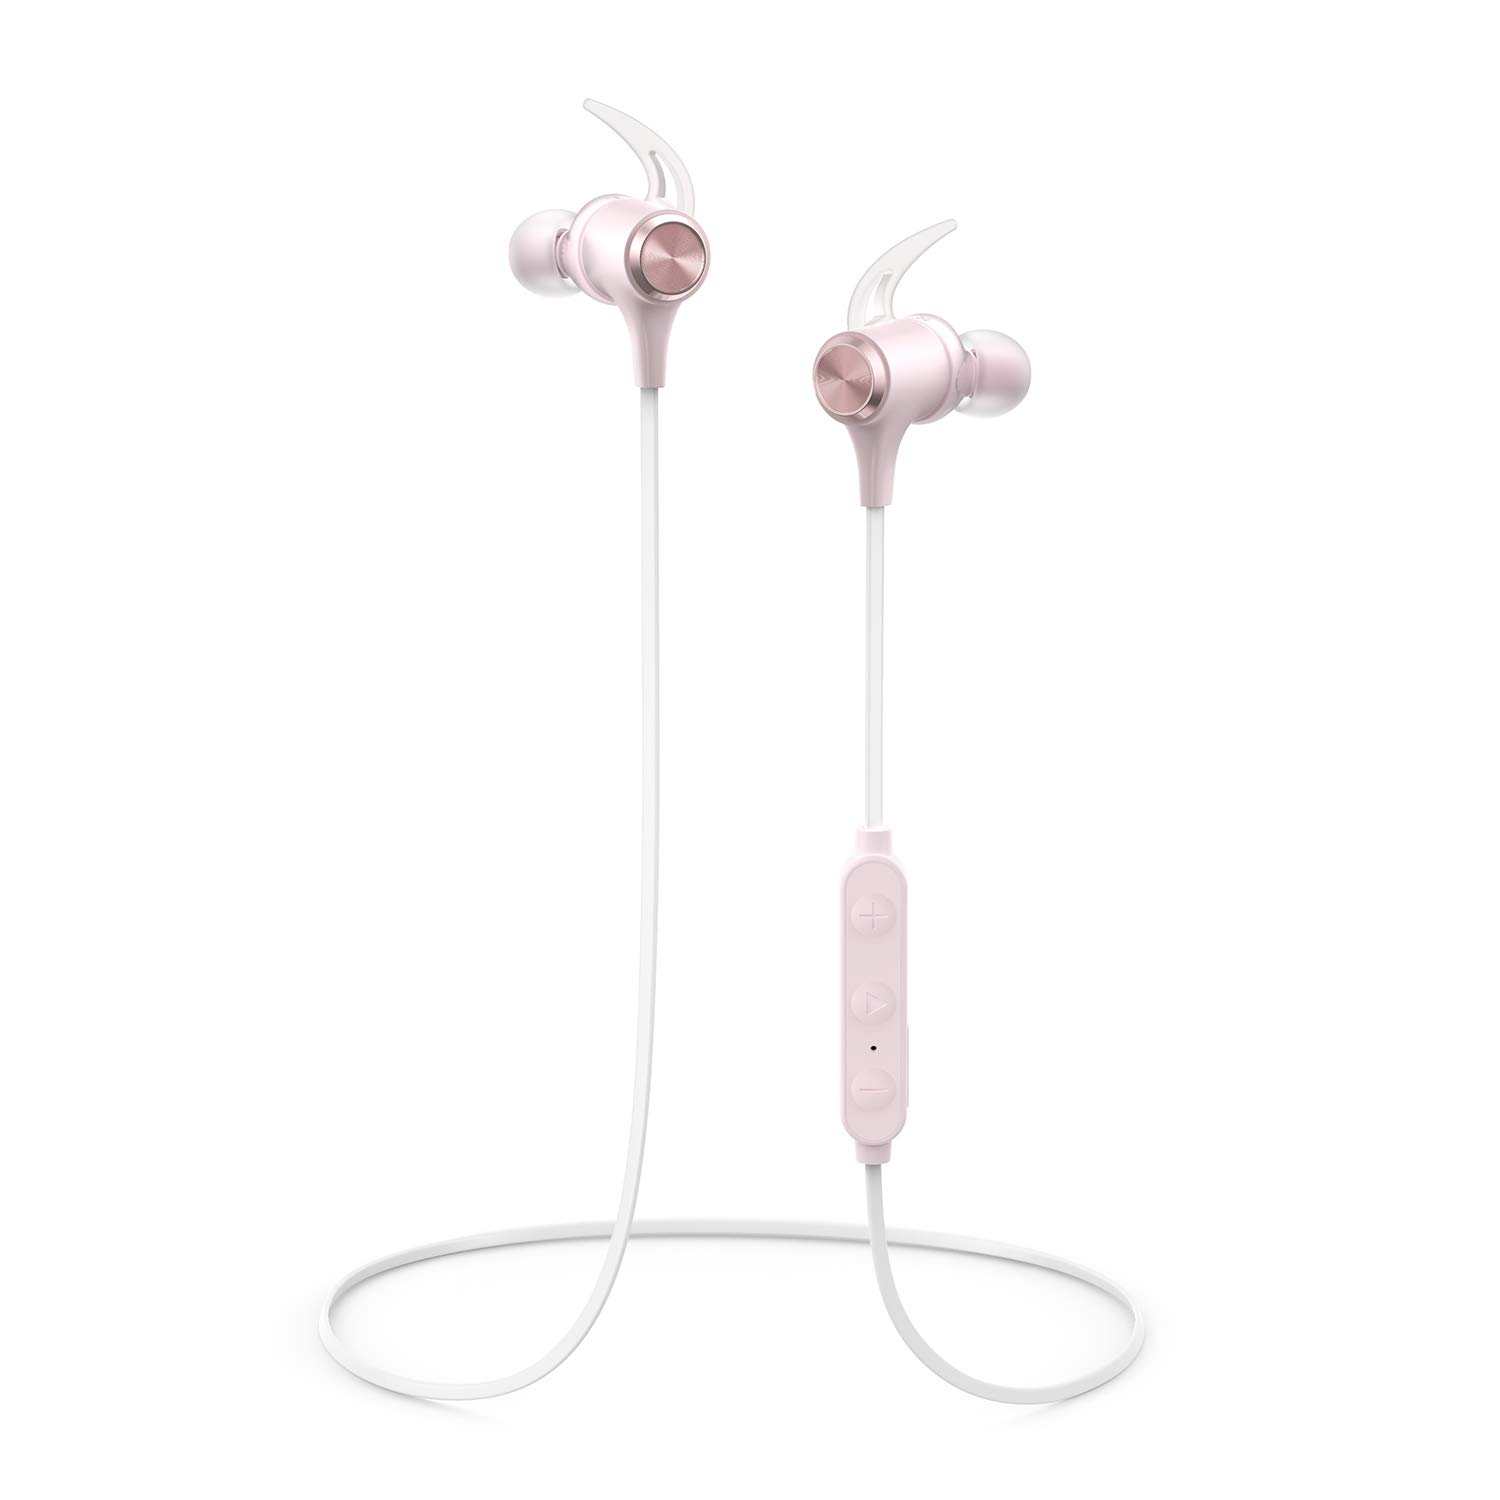 Amazon Com Boltune Wireless Headphones Bluetooth V5 0 Ipx7 Waterproof 16 Hours Playtime Bluetooth Headphones With Magnetic Connection Sports Earbuds For Running Built In Mic Pink Bt Bh001 Electronics